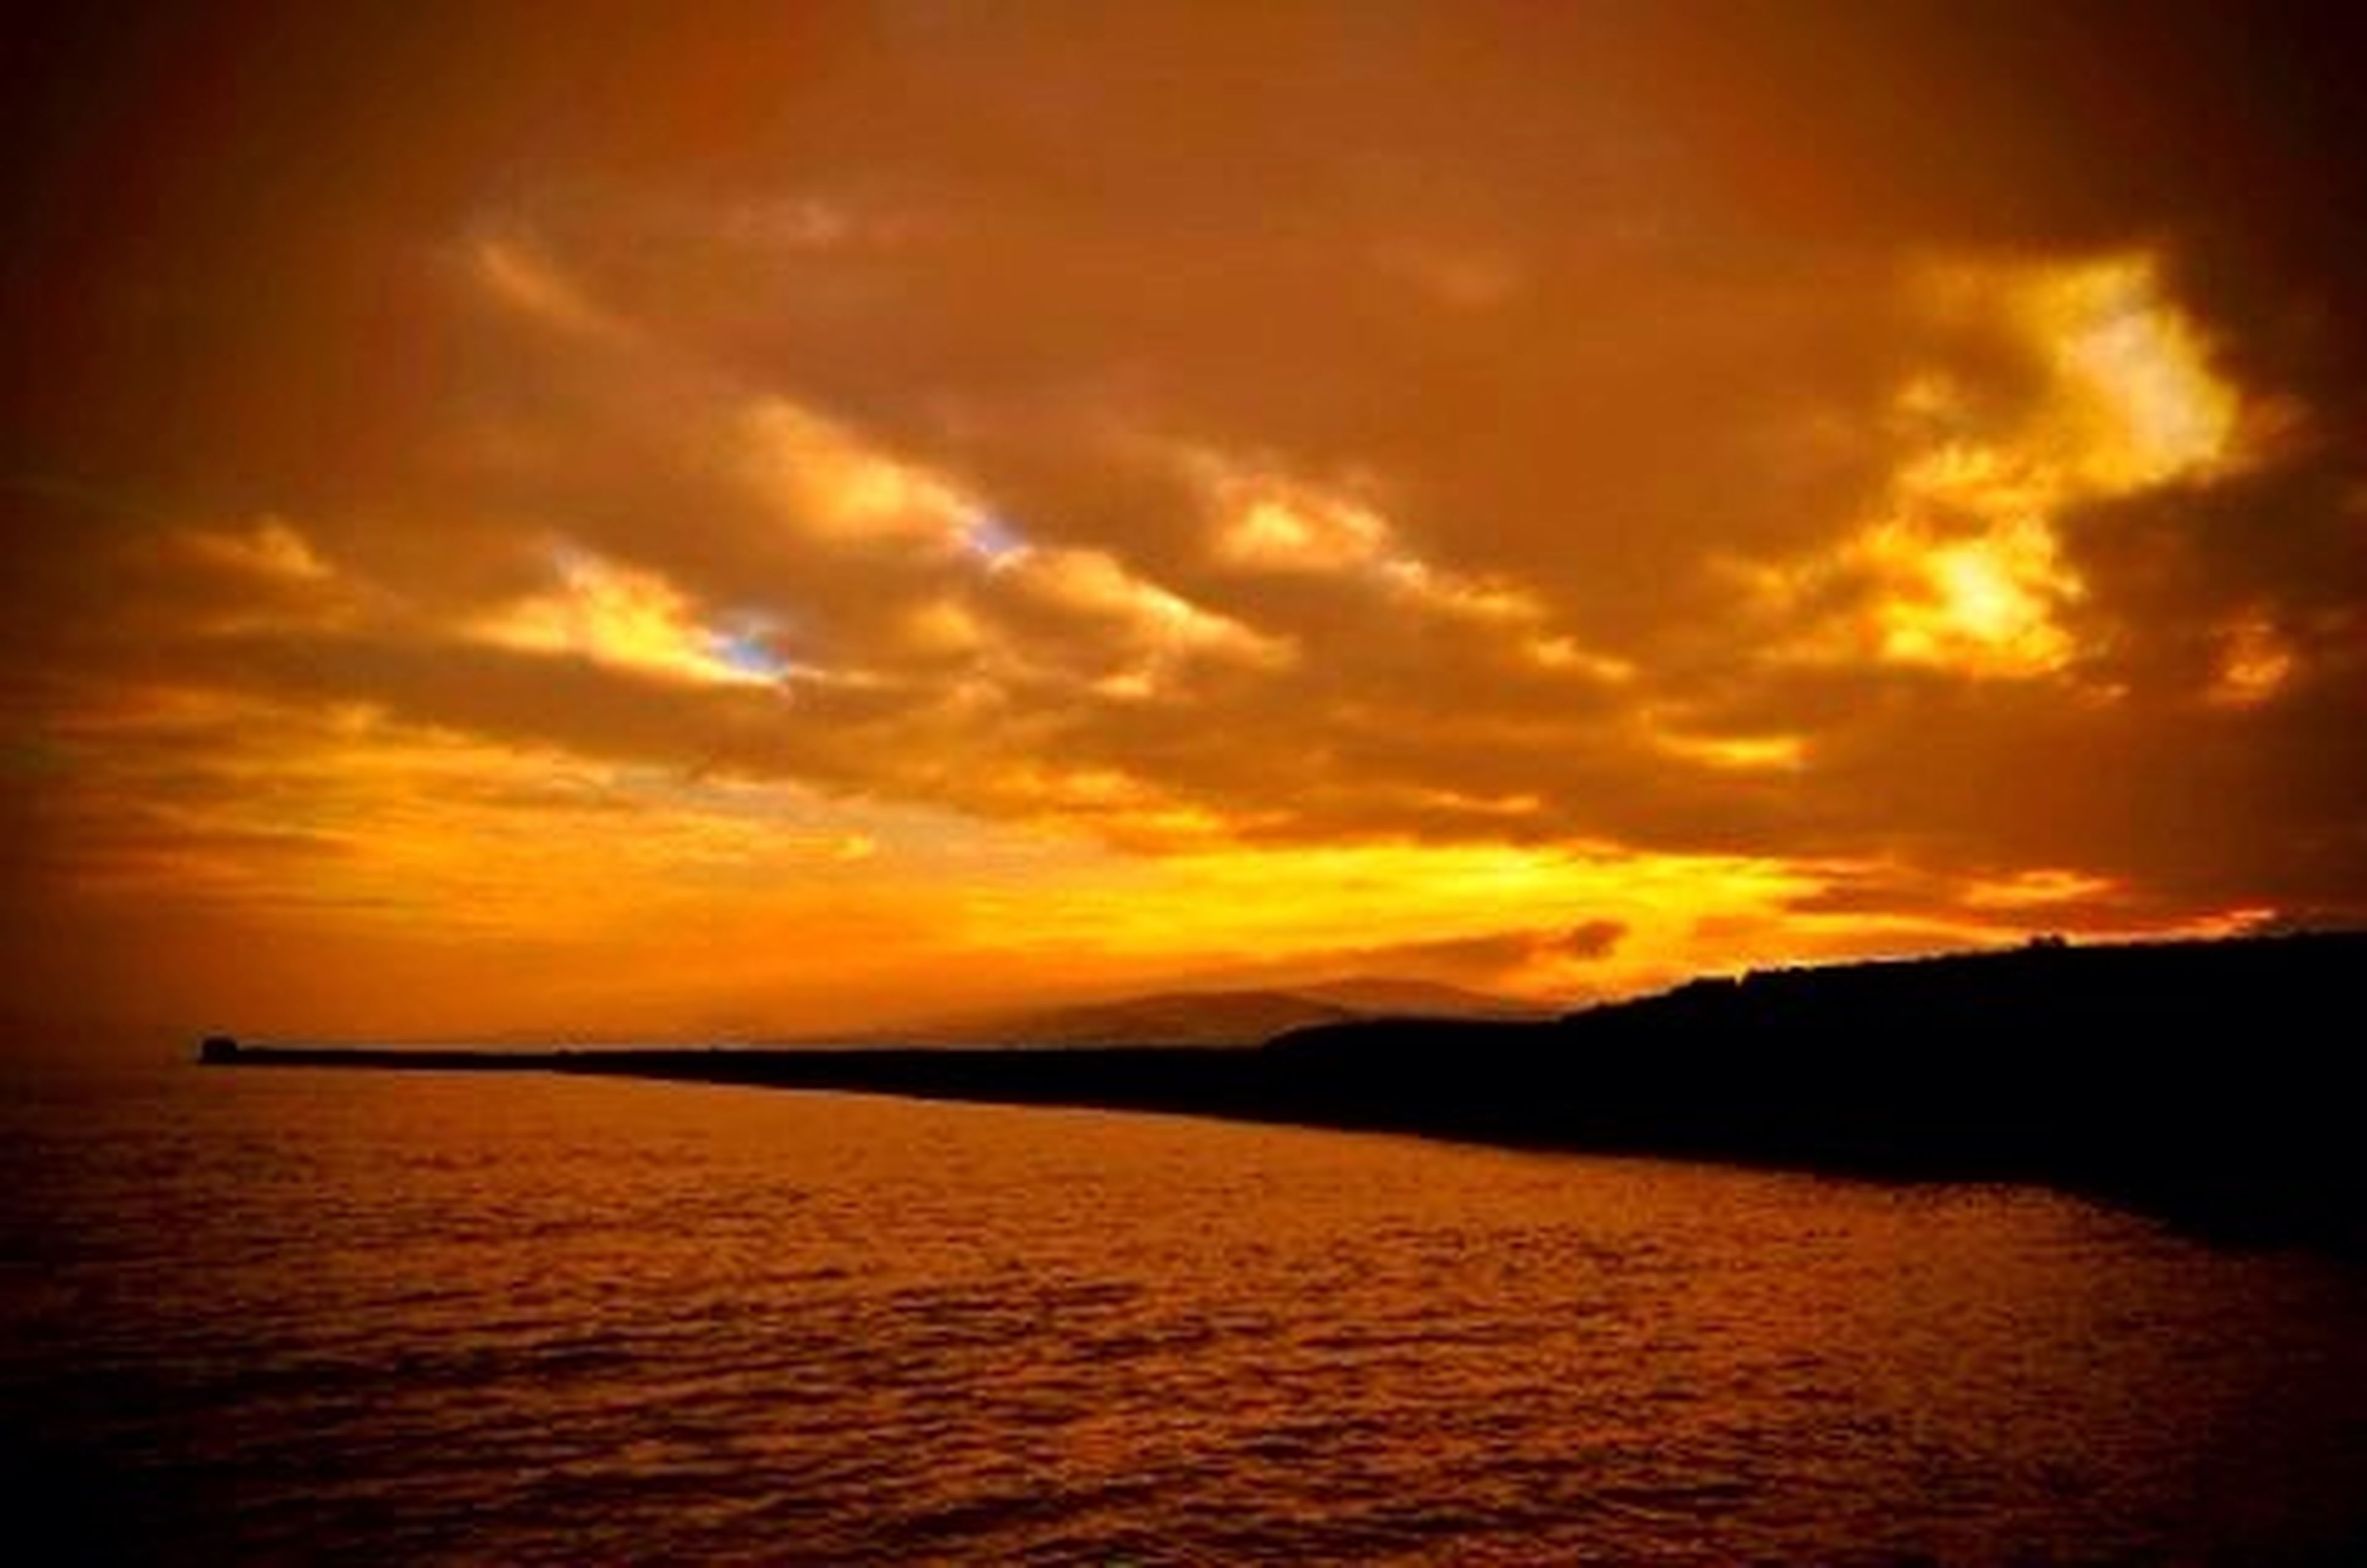 sunset, water, sea, scenics, tranquil scene, beauty in nature, orange color, tranquility, sky, waterfront, idyllic, horizon over water, nature, cloud - sky, silhouette, cloud, reflection, outdoors, dramatic sky, rippled